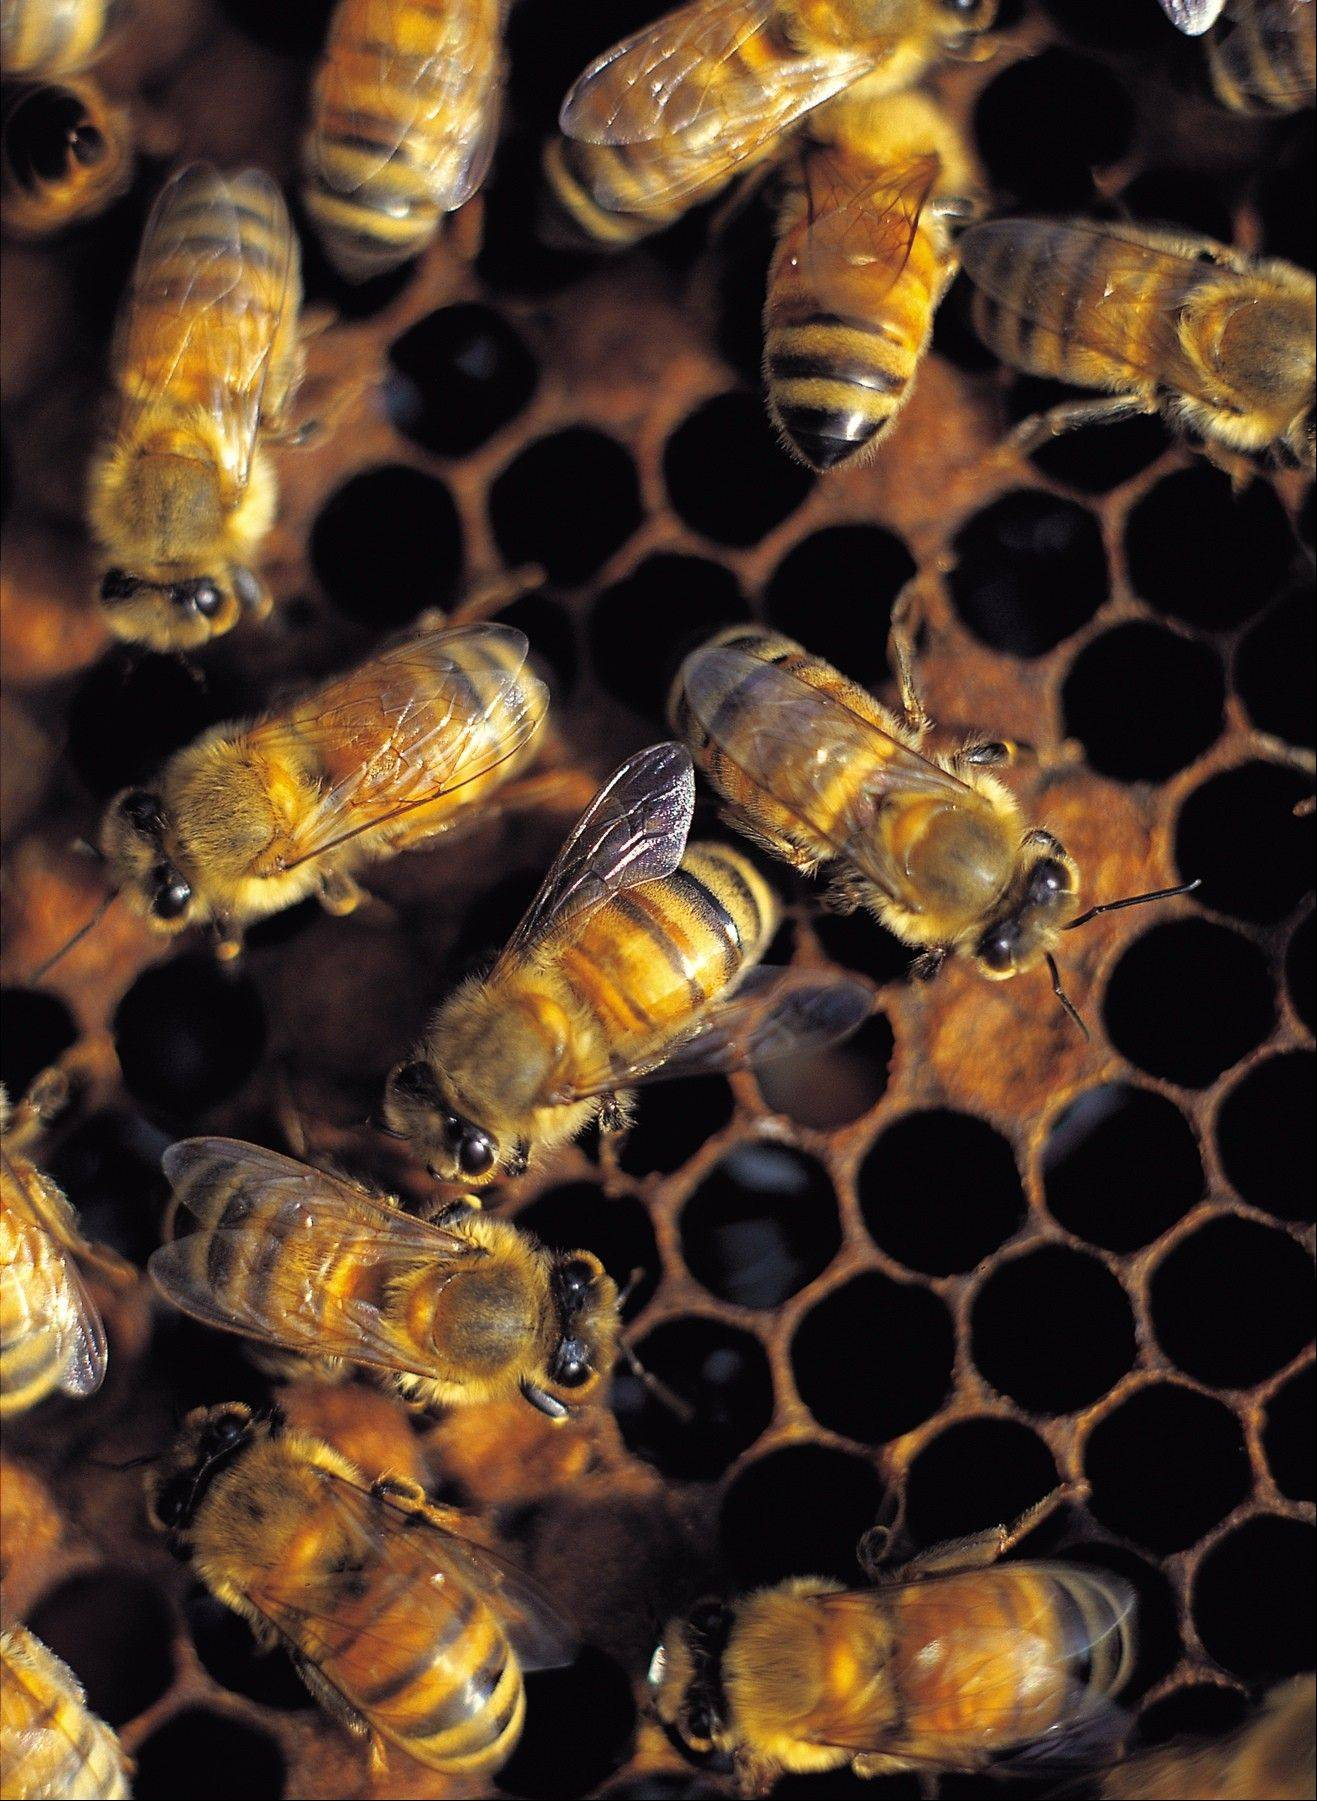 West Dundee officials will vote on a honeybee ordinance in October. If approved, residents would be allowed to raise honeybees in their backyards.